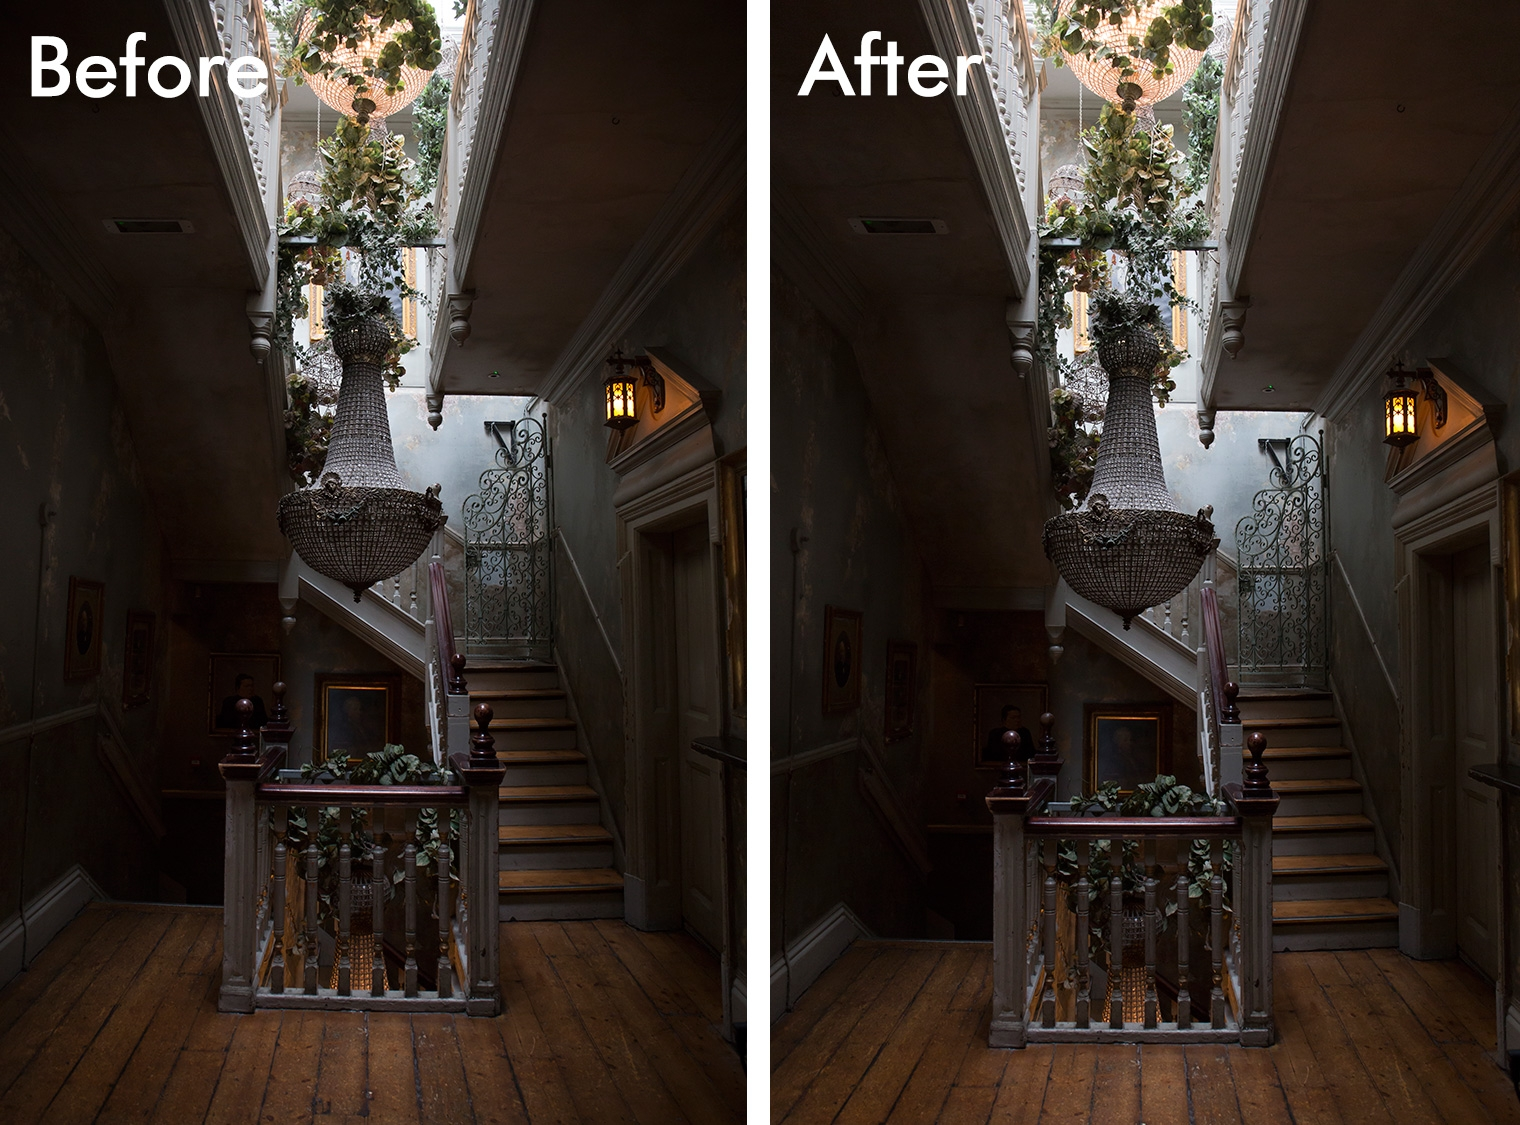 Photoshop tutorial: Remove lens distortion in Photoshop